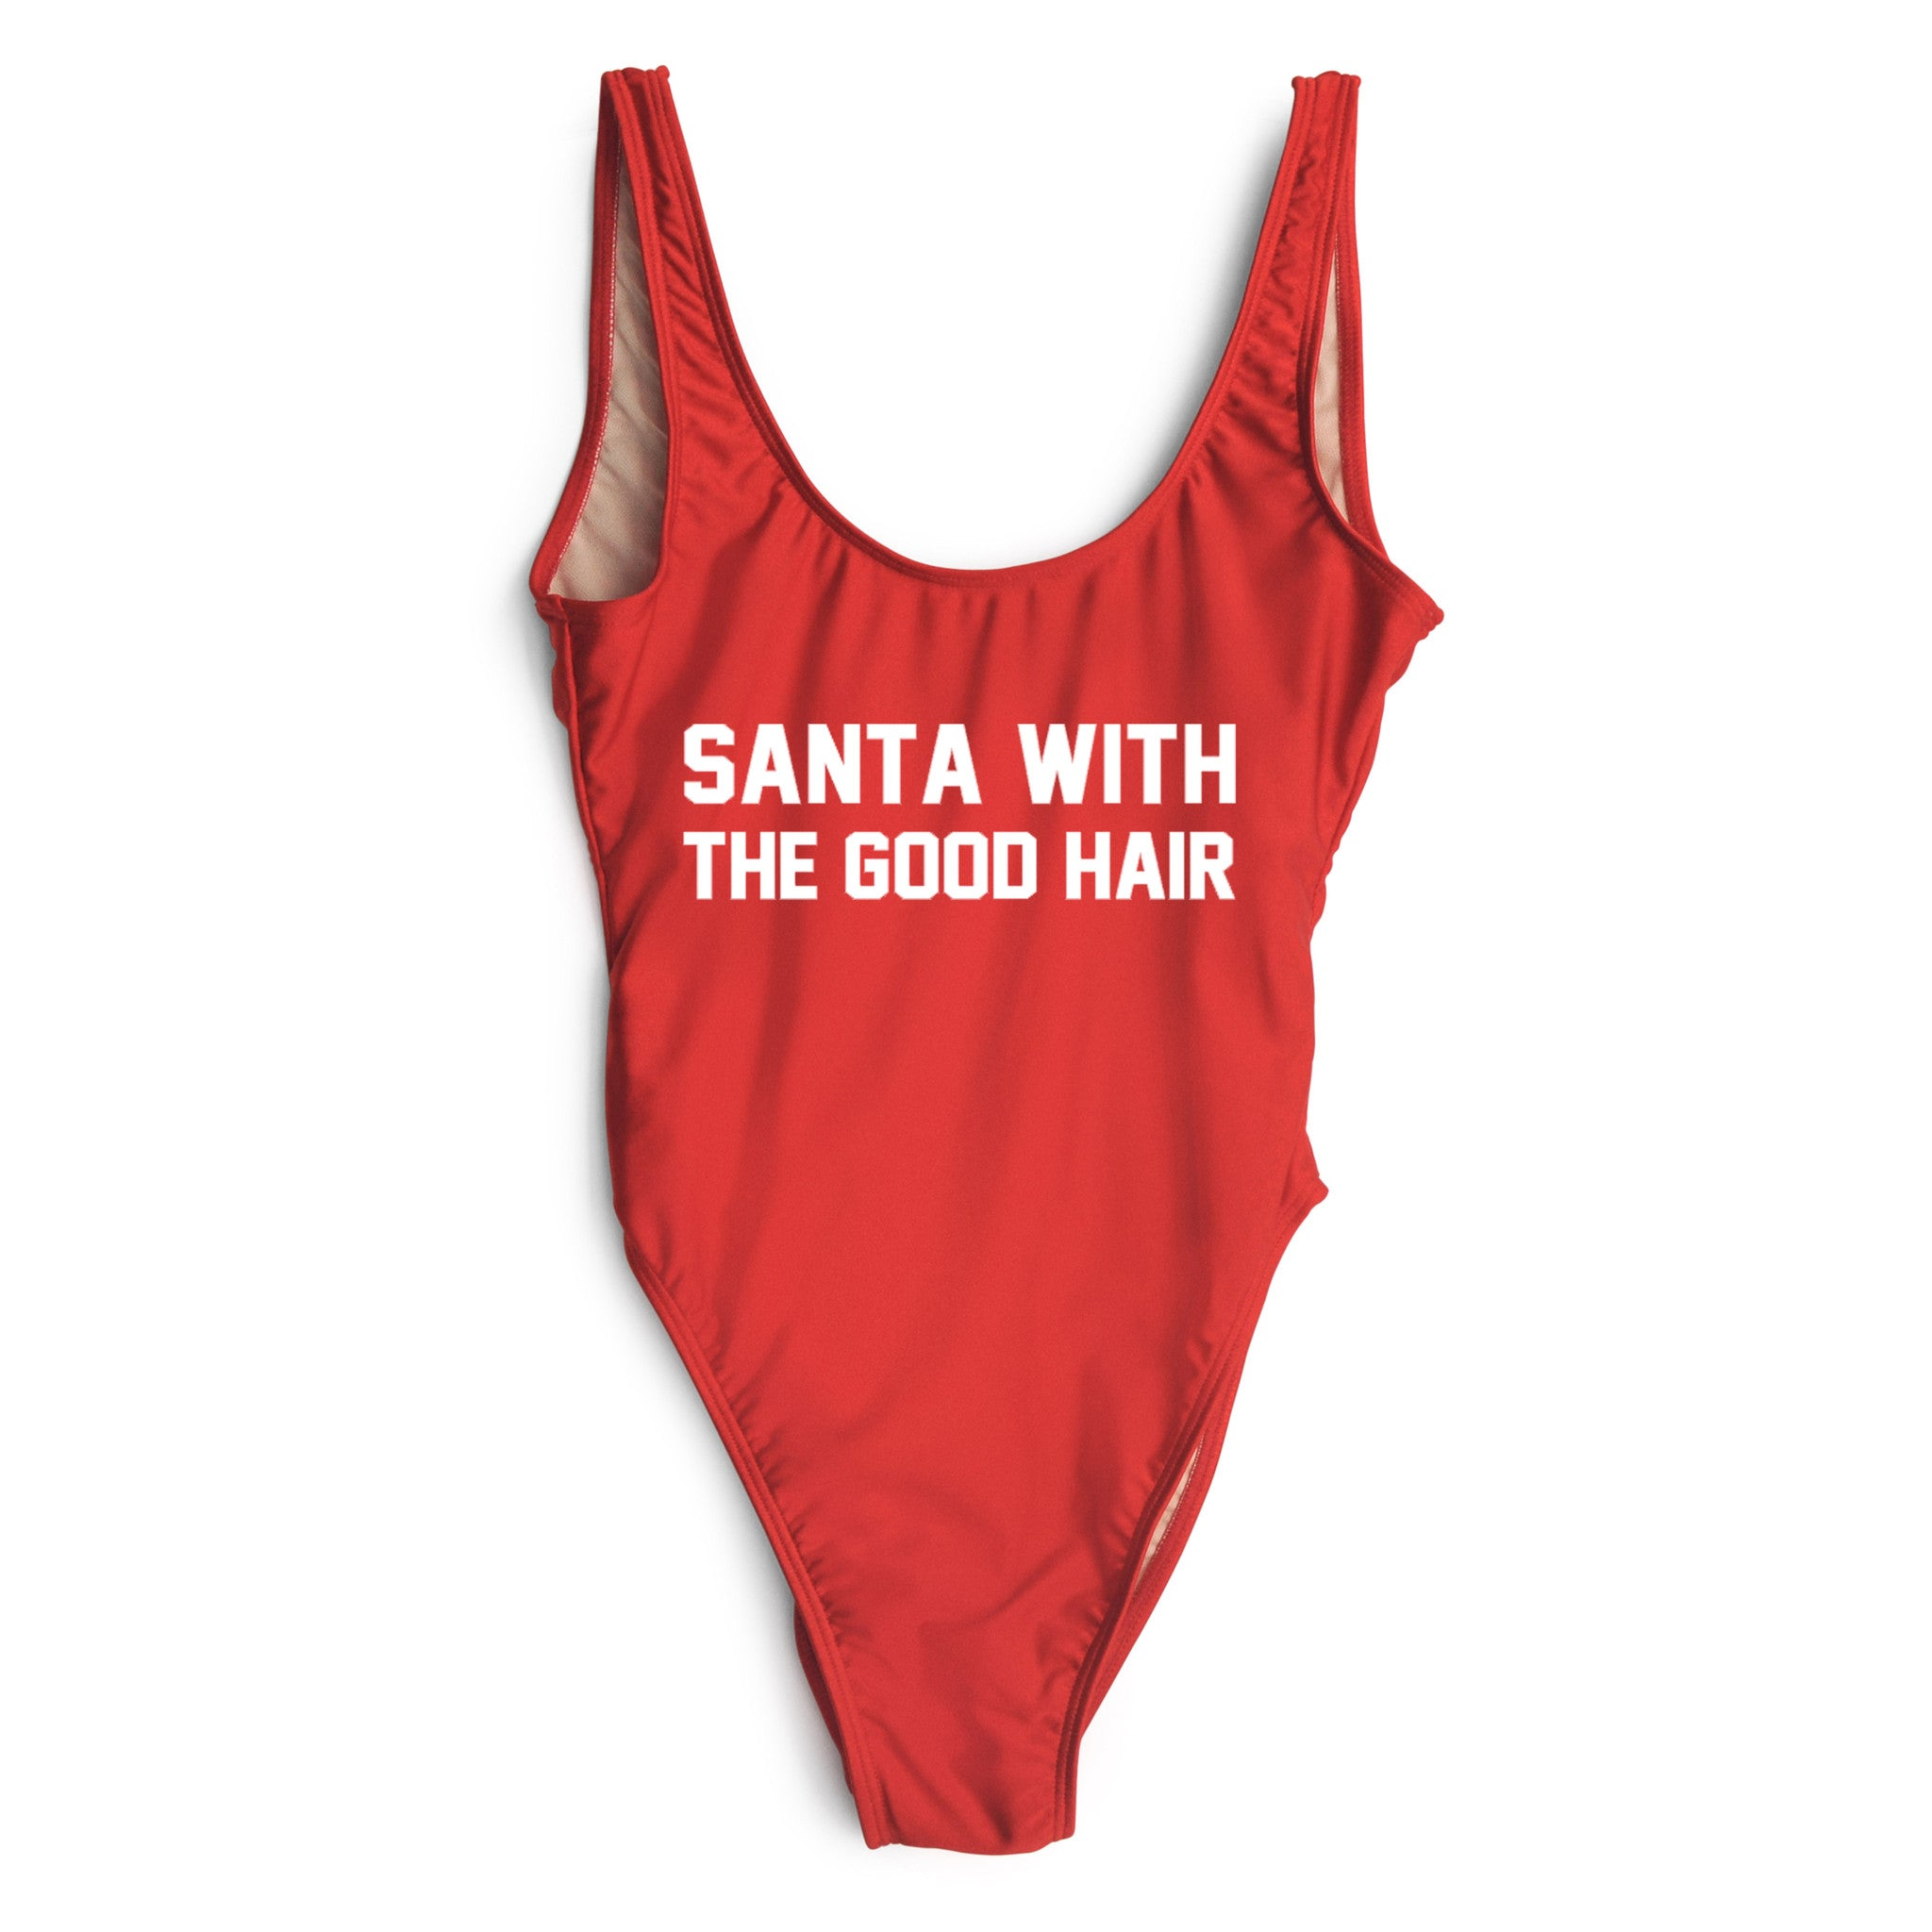 SANTA WITH THE GOOD HAIR [SWIMSUIT]